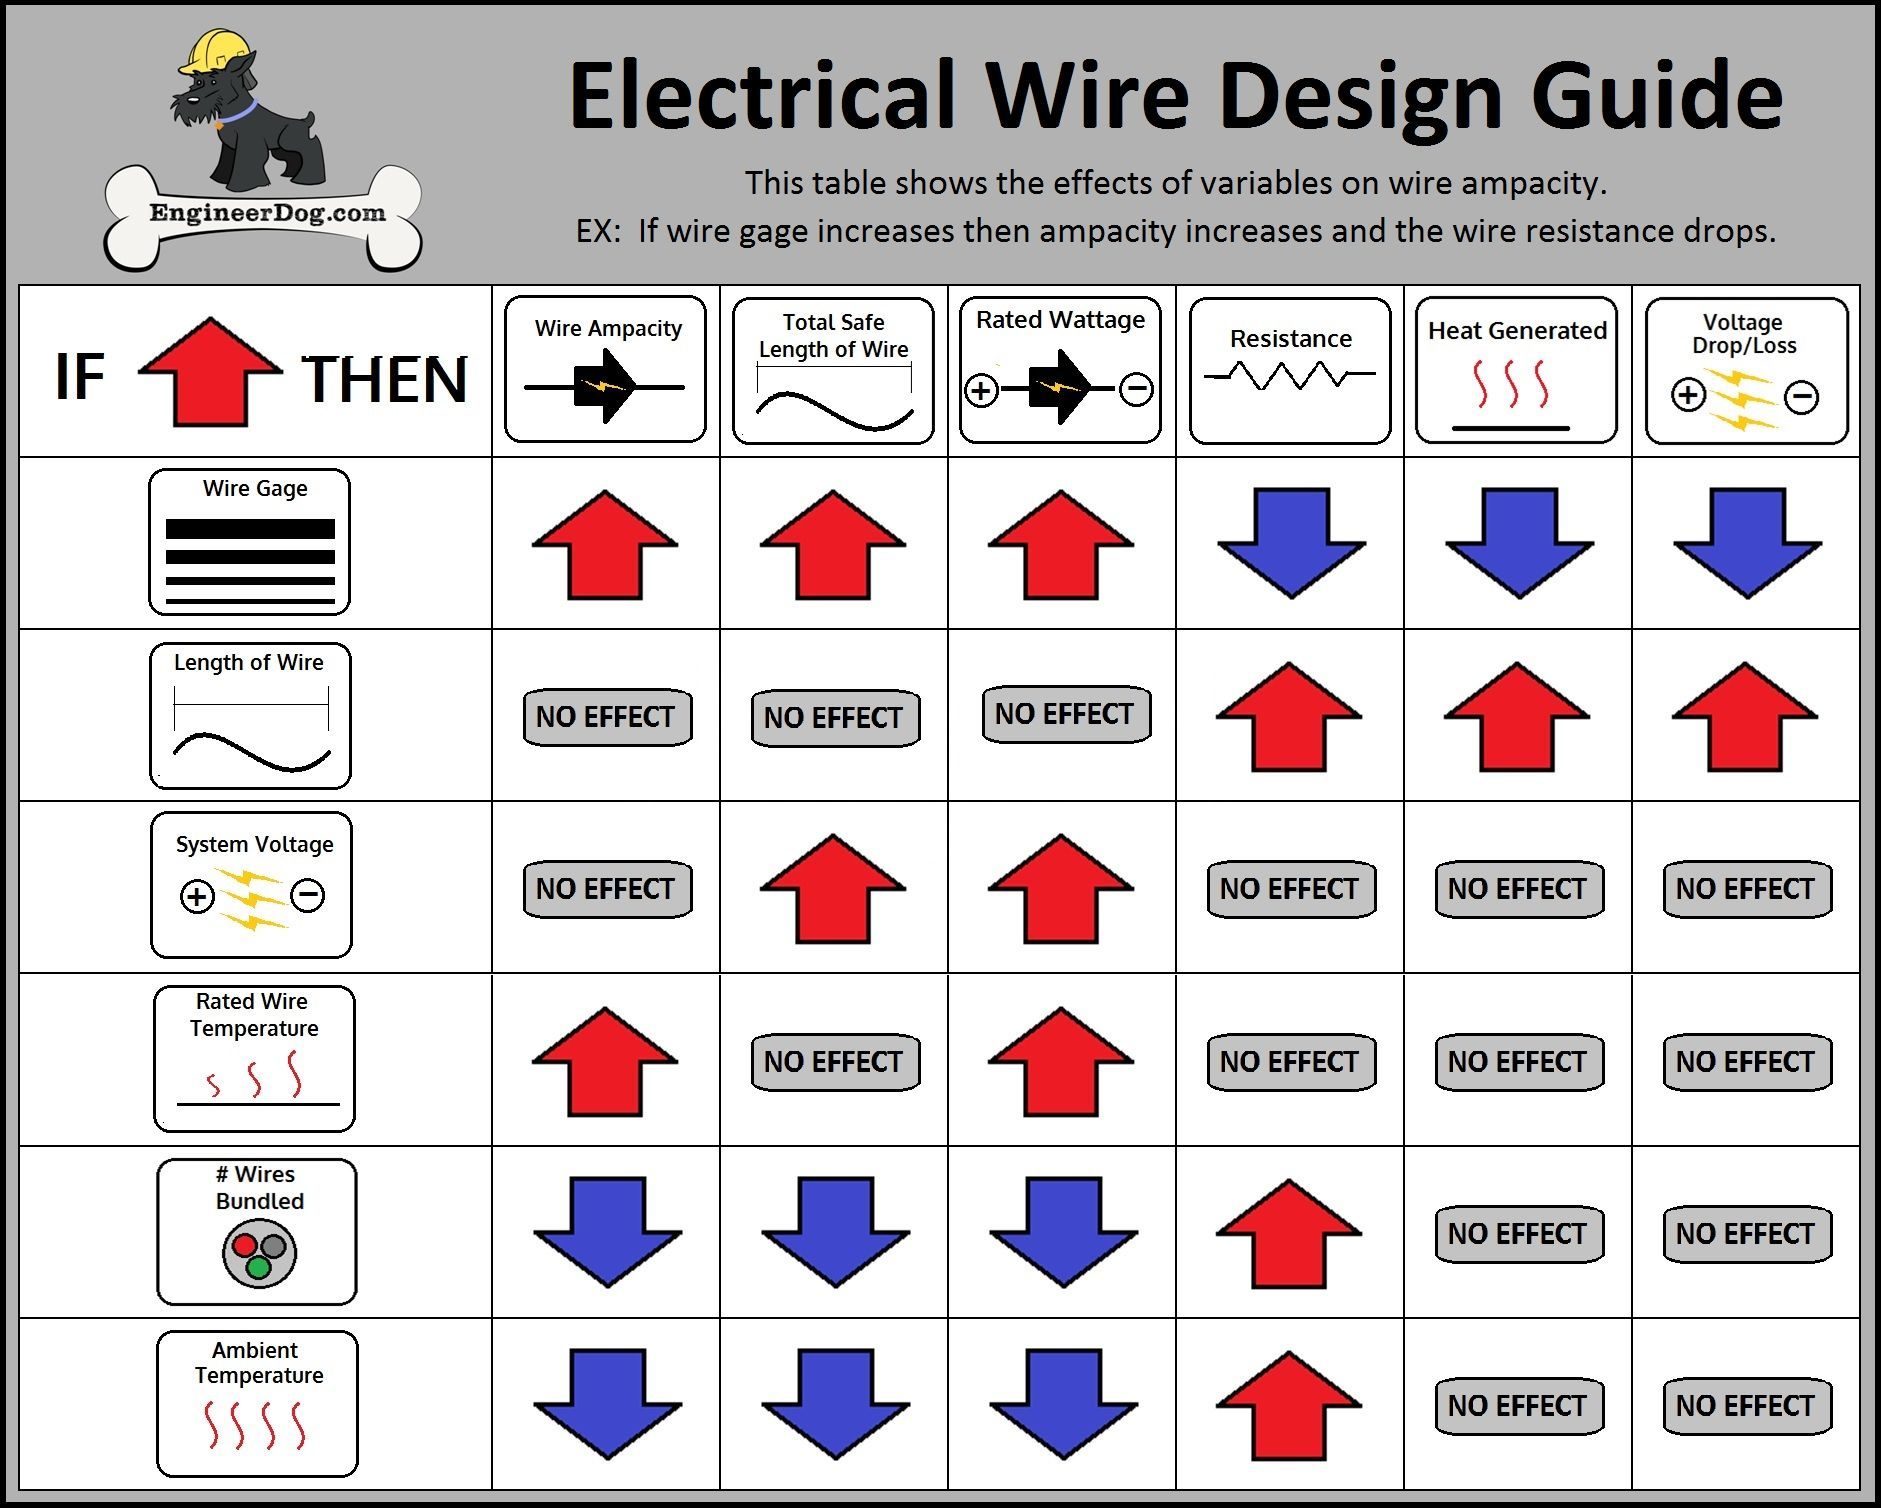 medium resolution of home wiring gauge guides wiring diagram expert house wiring gauge chart electrical wire design guide see